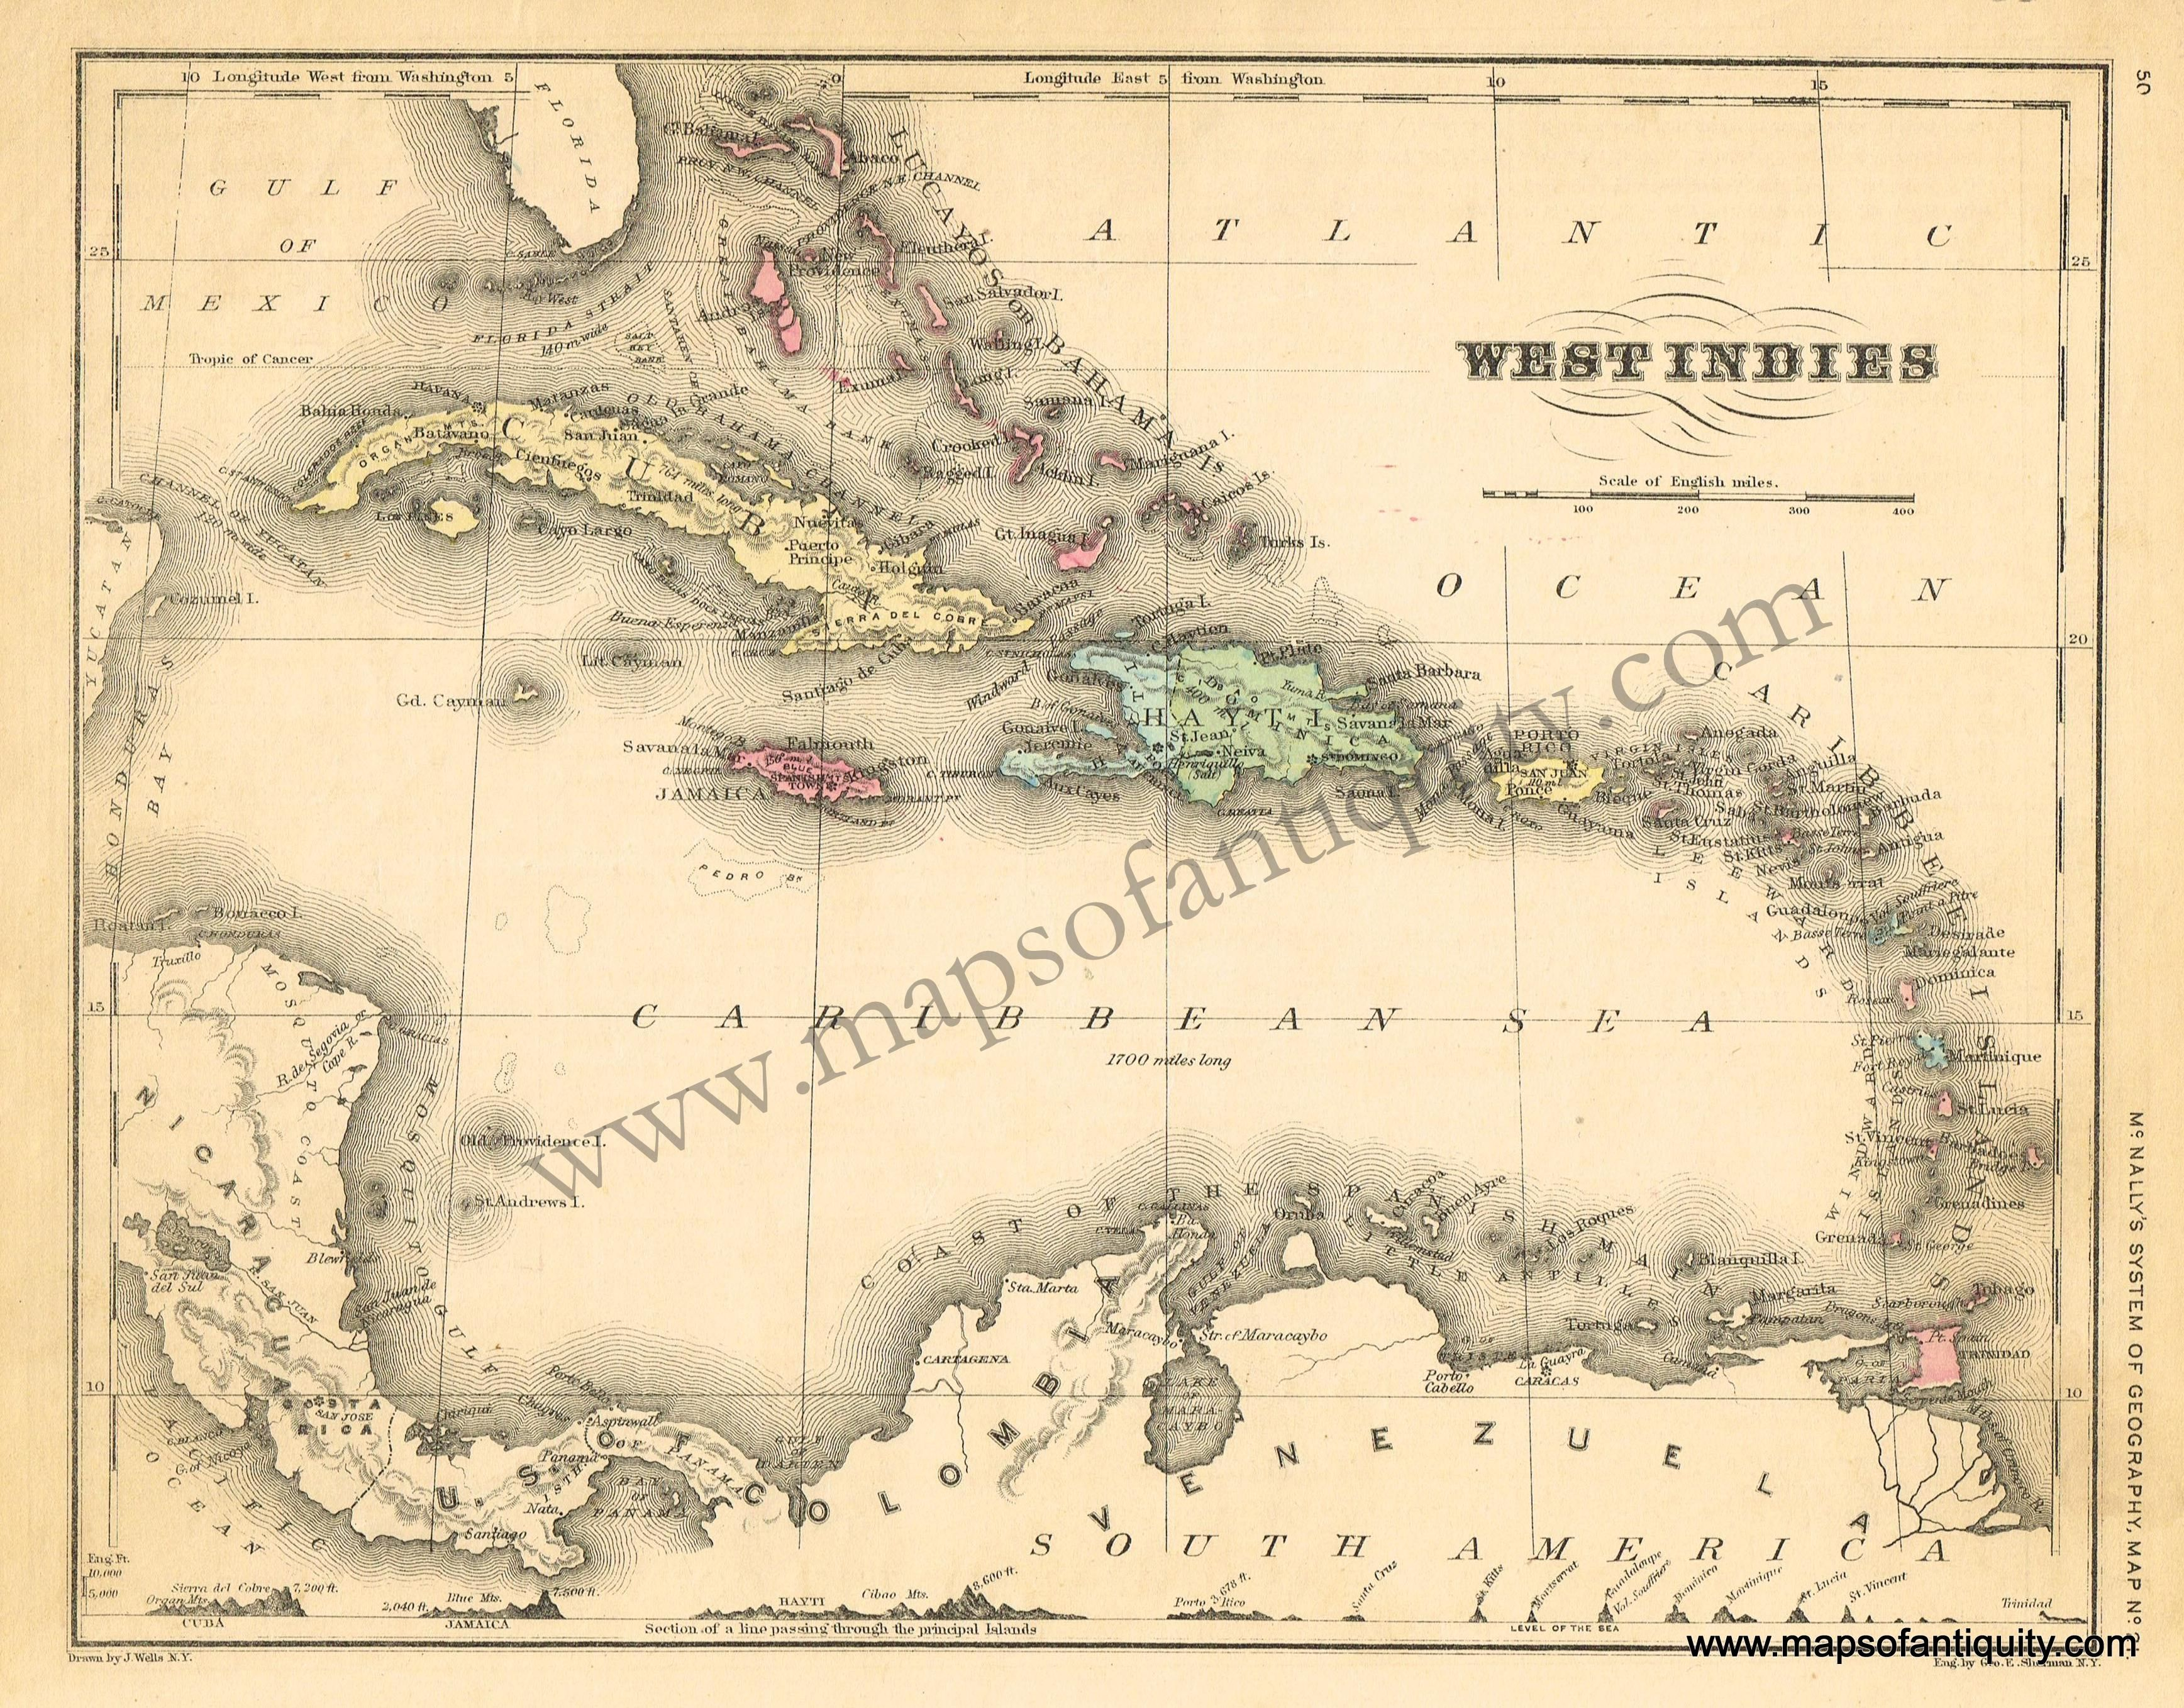 West Ins Antique Maps And Charts Original Vintage Rare Historical Prints Reproductions Of Antiquity